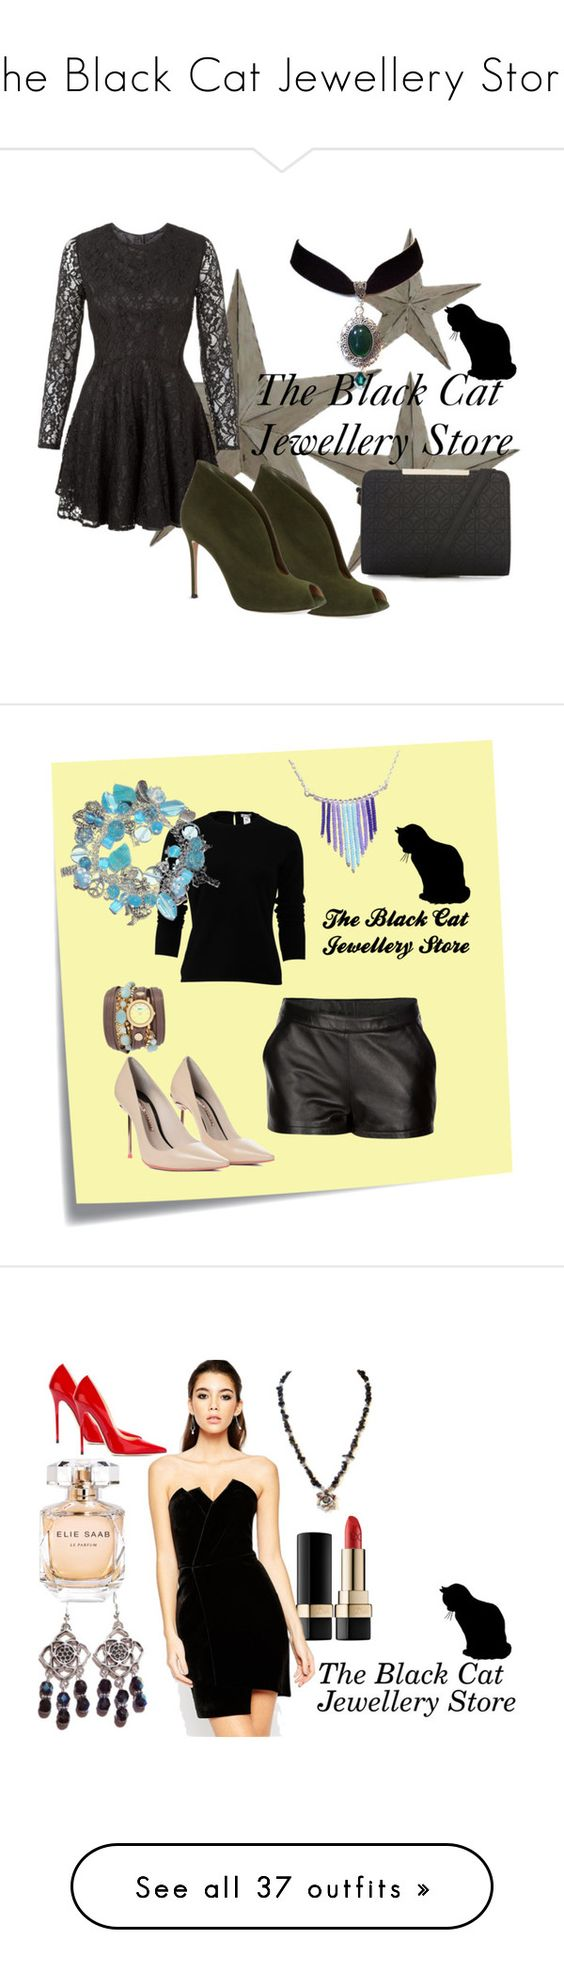 """The Black Cat Jewellery Store"" by tamara-sucha on Polyvore featuring John Zack, Gianvito Rossi, Post-It, Mairi Mcdonald, Sophia Webster, Oscar de la Renta, La Mer, Dolce&Gabbana, ASOS and Jimmy Choo"